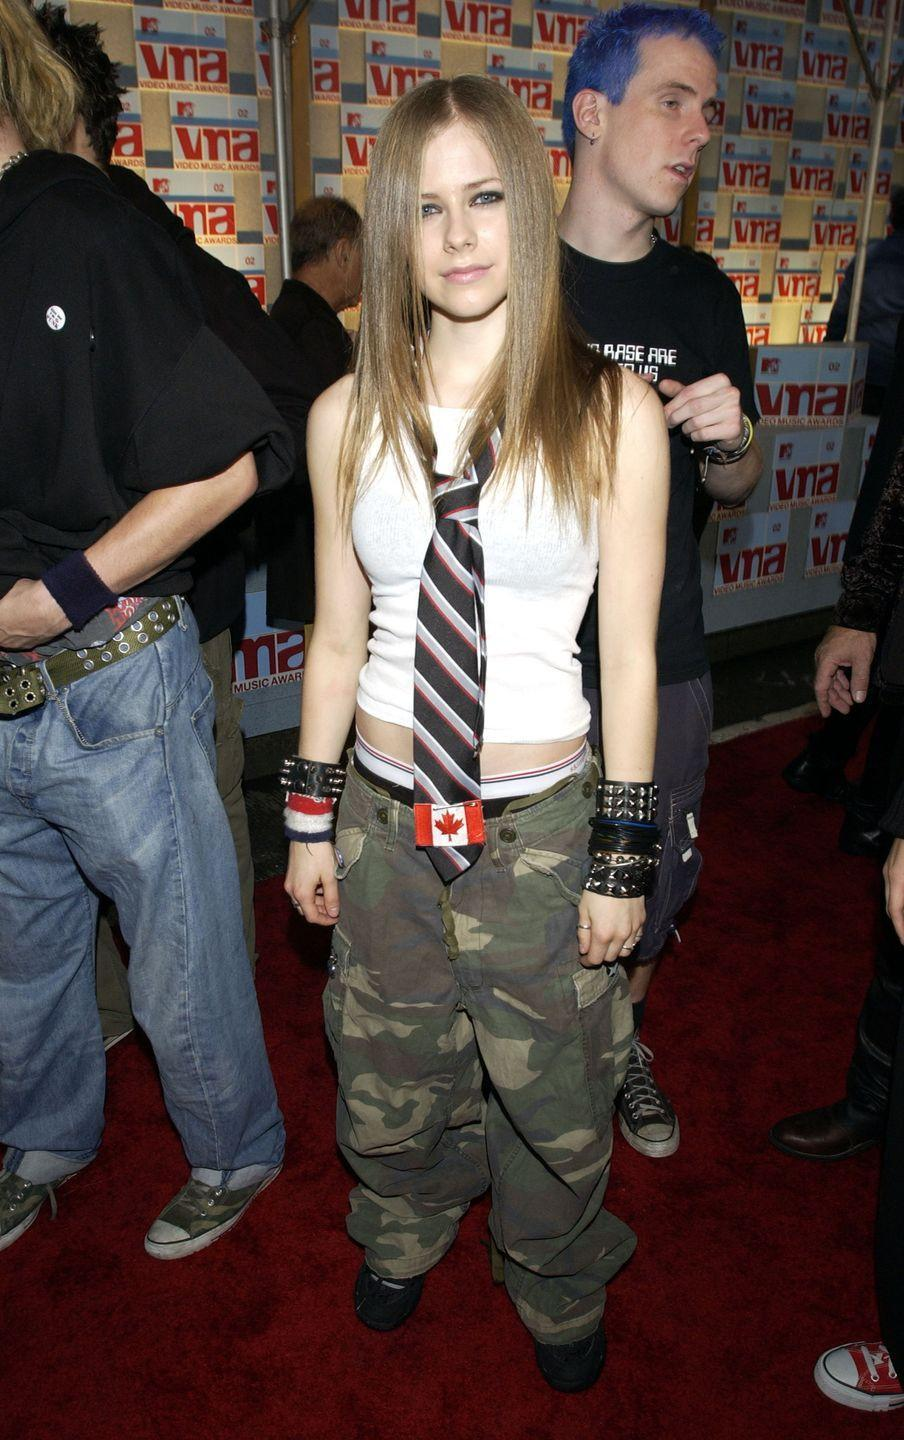 <p>Never forget that time you tried on one of your dad's ties to see if you could pull off Avril's punk look—also starring camo cargo pants!—from the VMAs.</p>